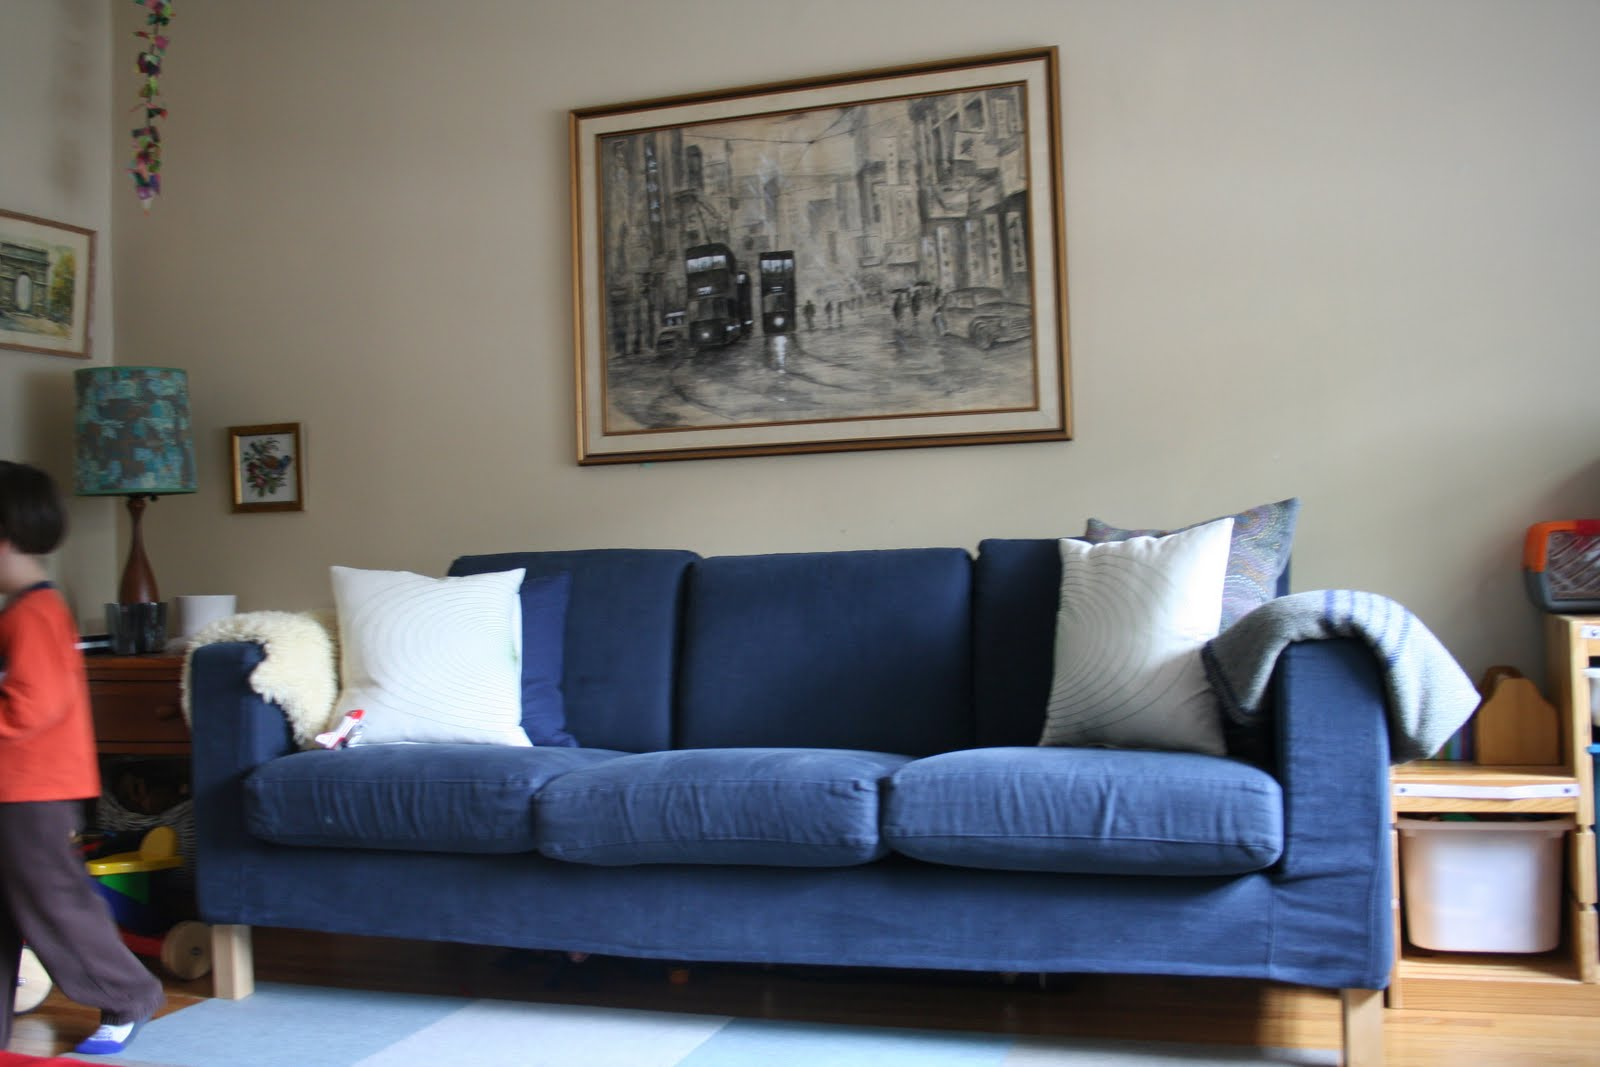 It's your typical Ikea navy blue sofa and it needs sprucing up. title=